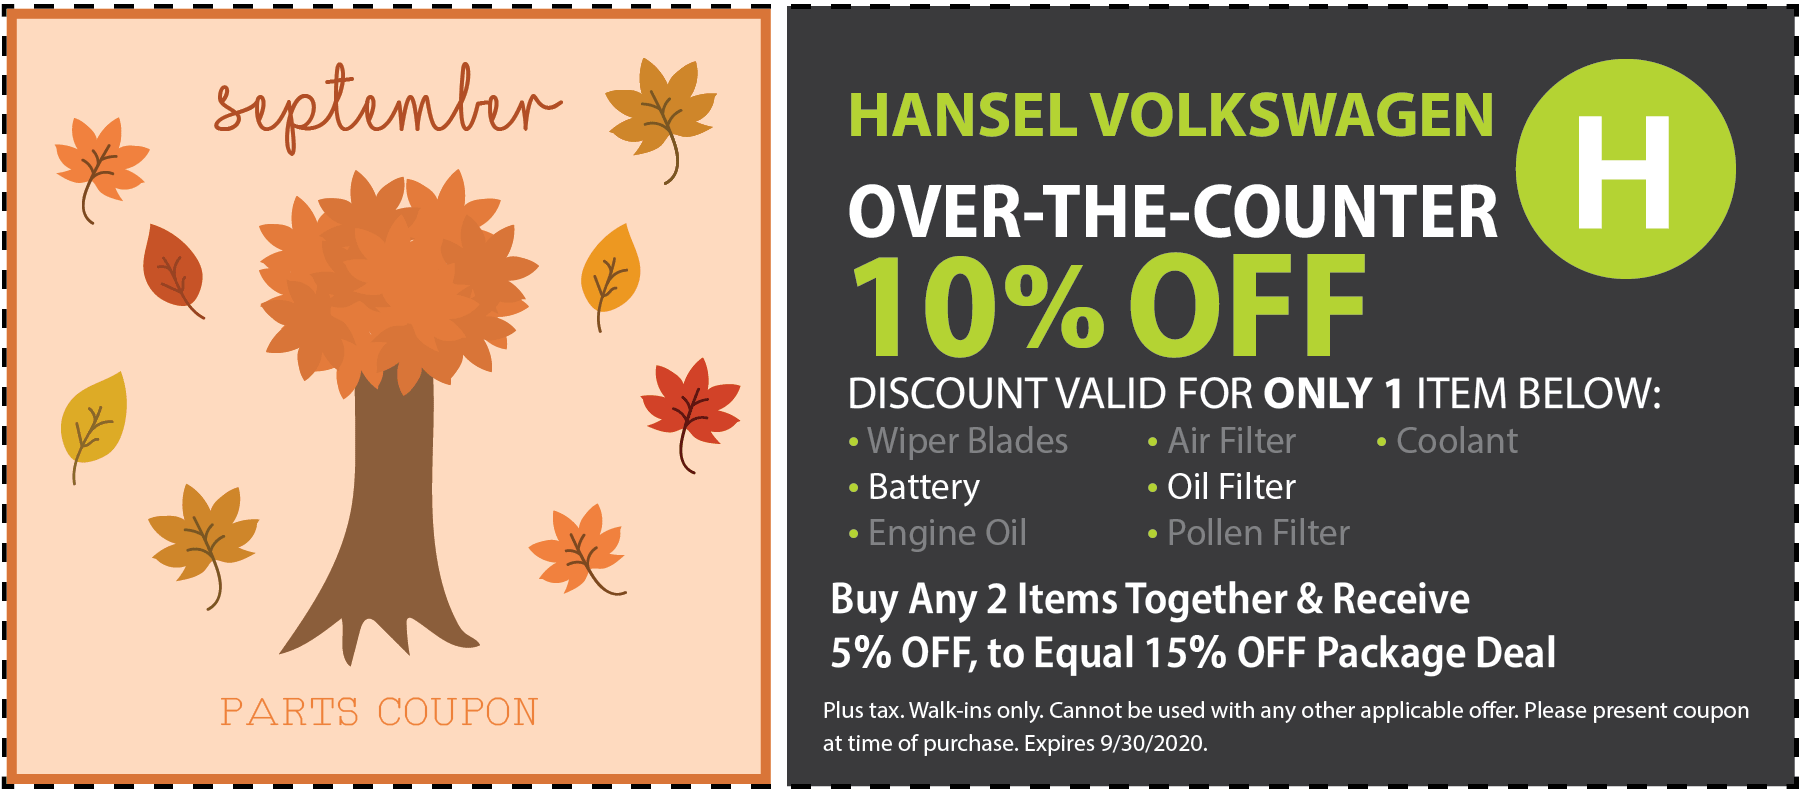 VW Over-The-Counter Special Coupon